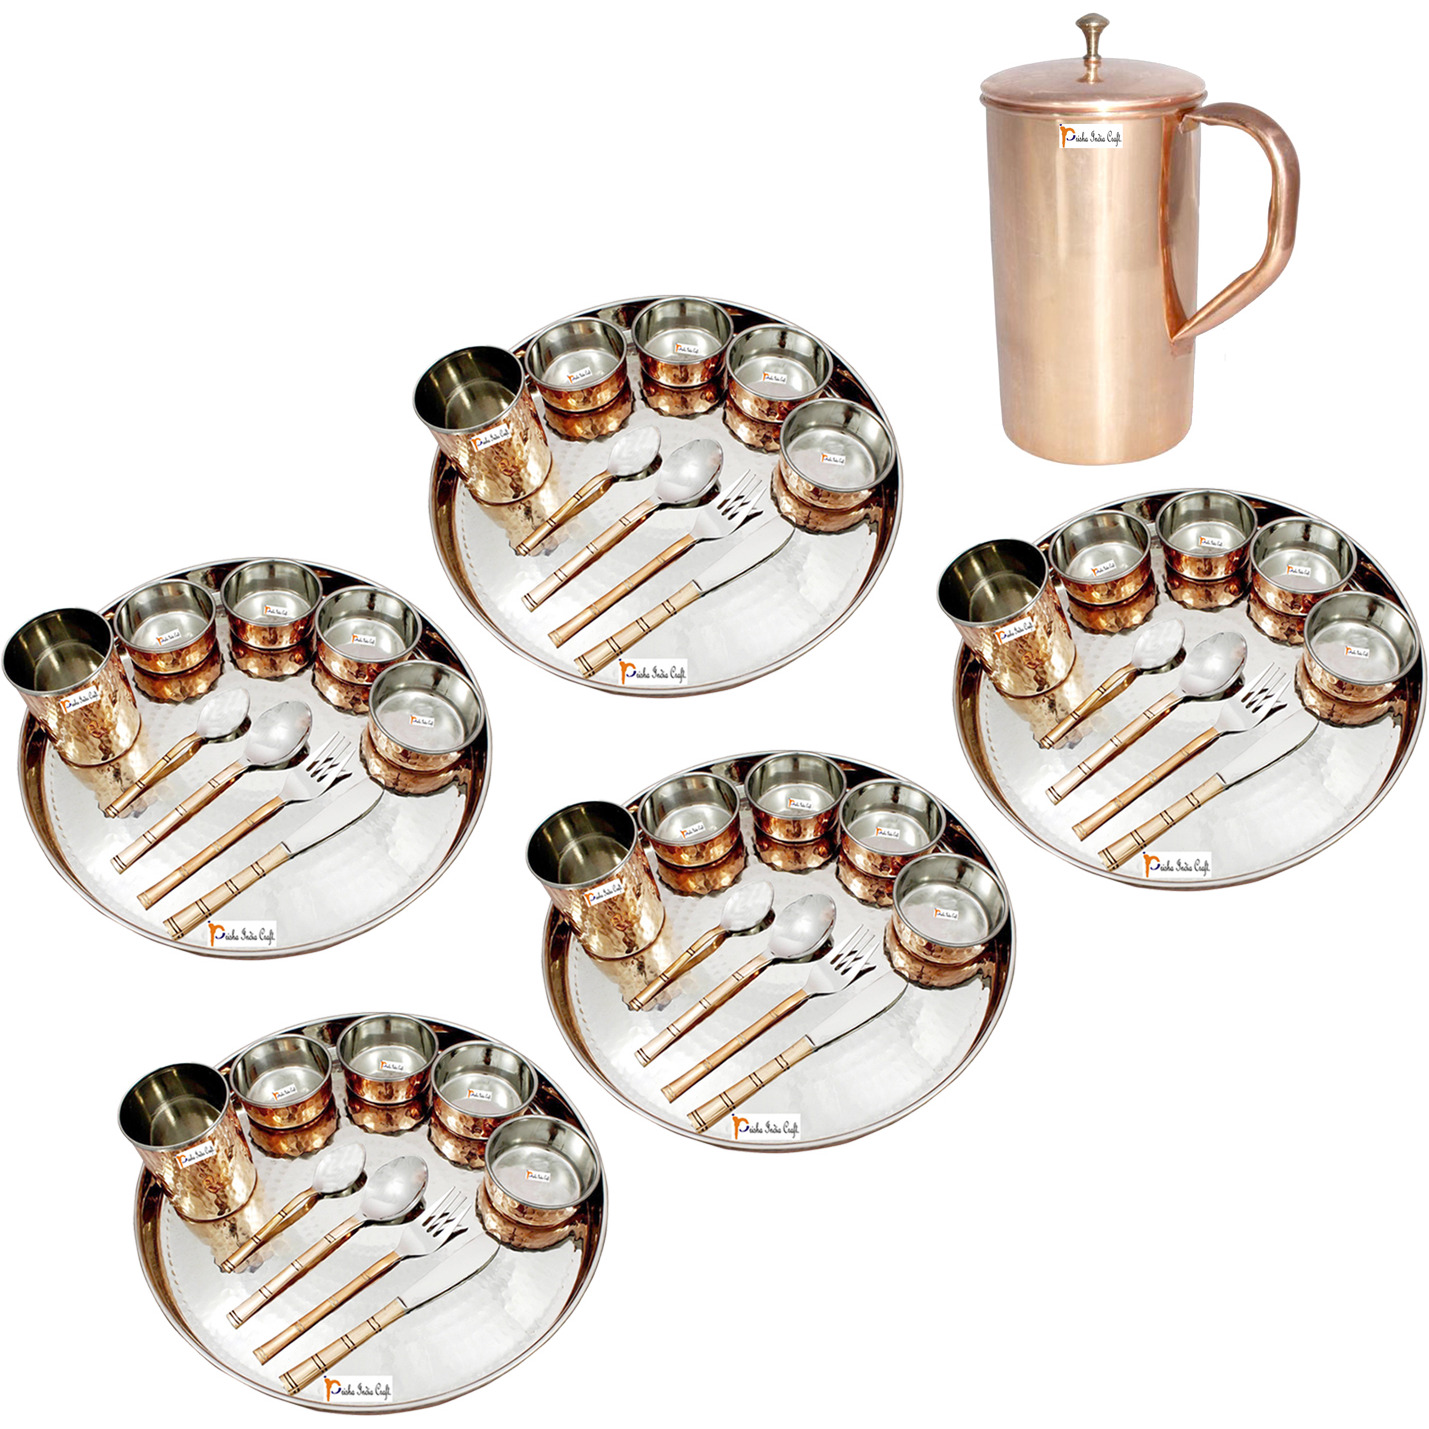 Prisha India Craft B. Set of 5 Dinnerware Traditional Stainless Steel Copper Dinner Set of Thali Plate, Bowls, Glass and Spoons, Dia 13  With 1 Pure Copper Classic Pitcher Jug - Christmas Gift